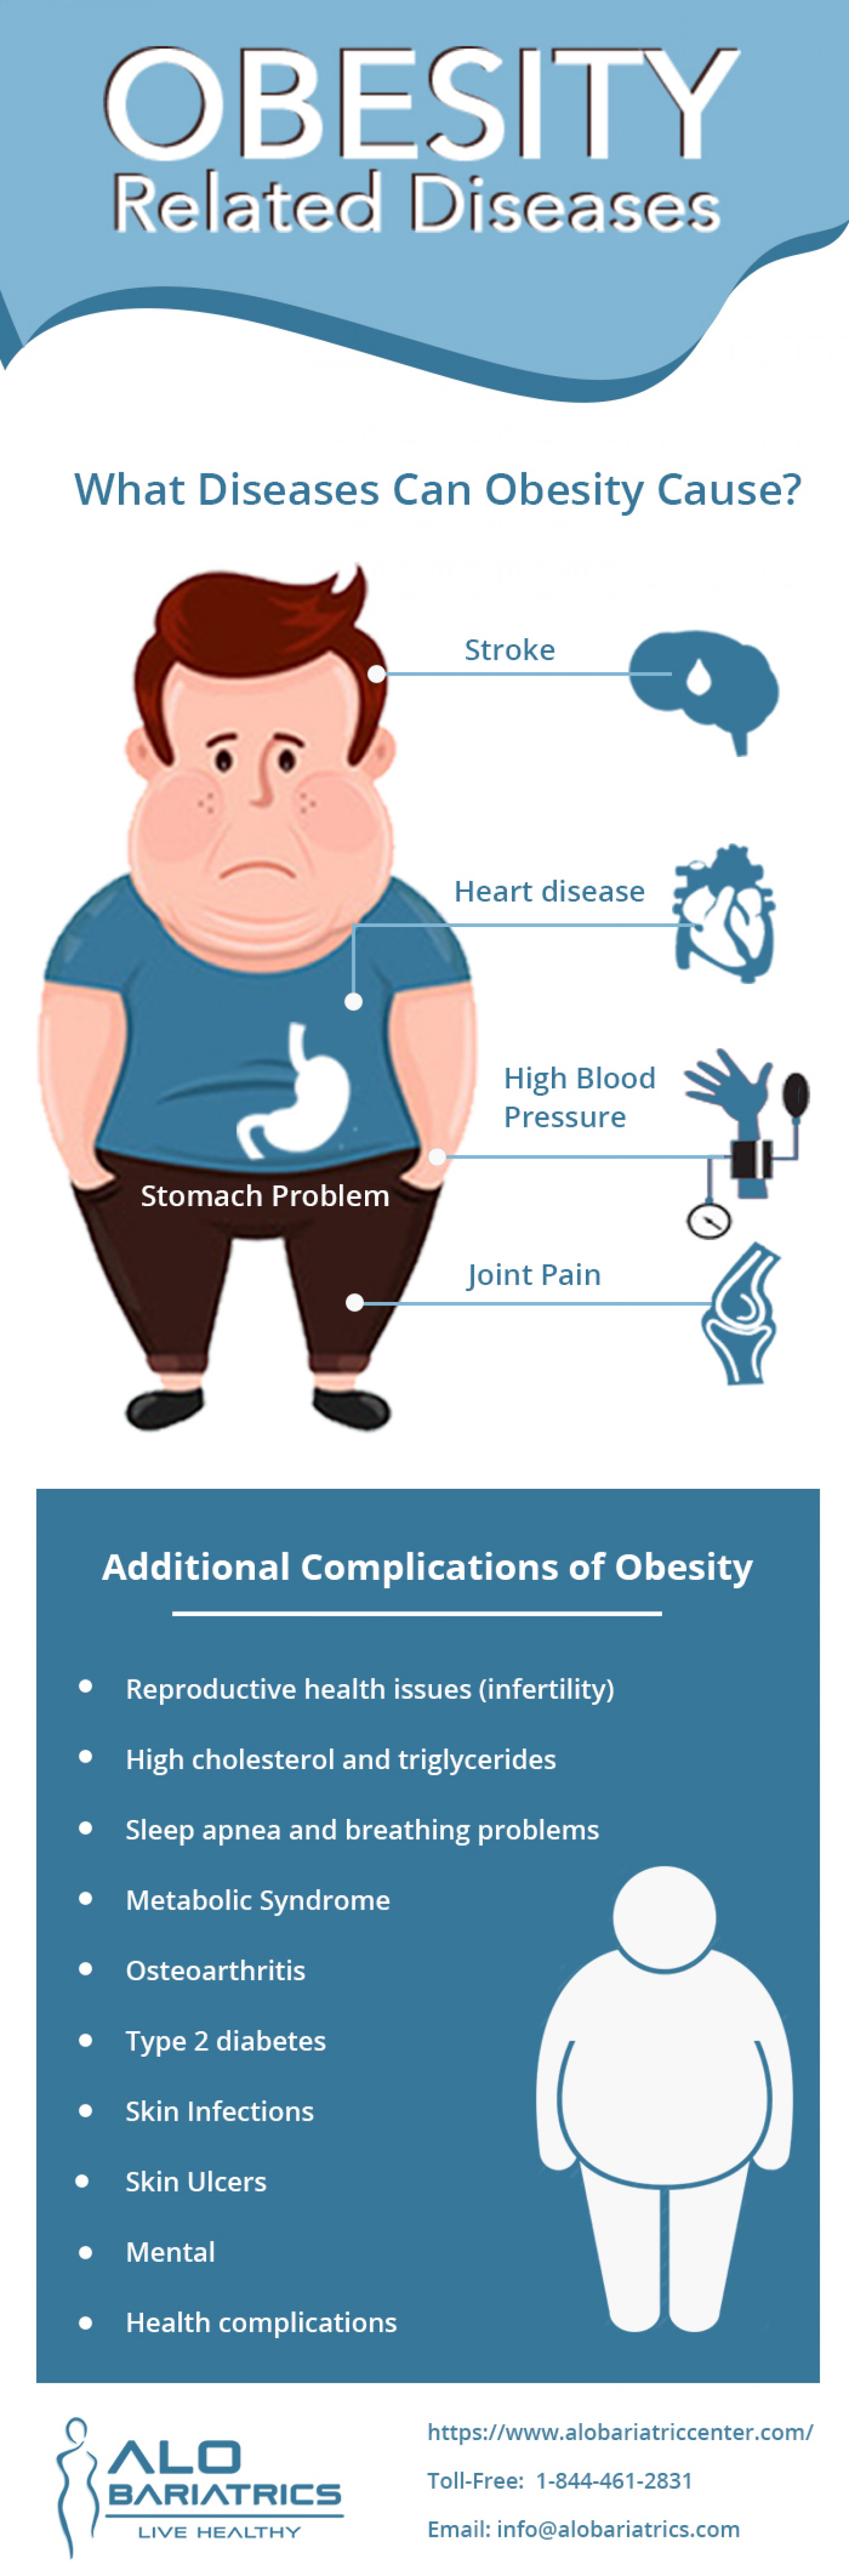 Obesity Related Diseases Infographic